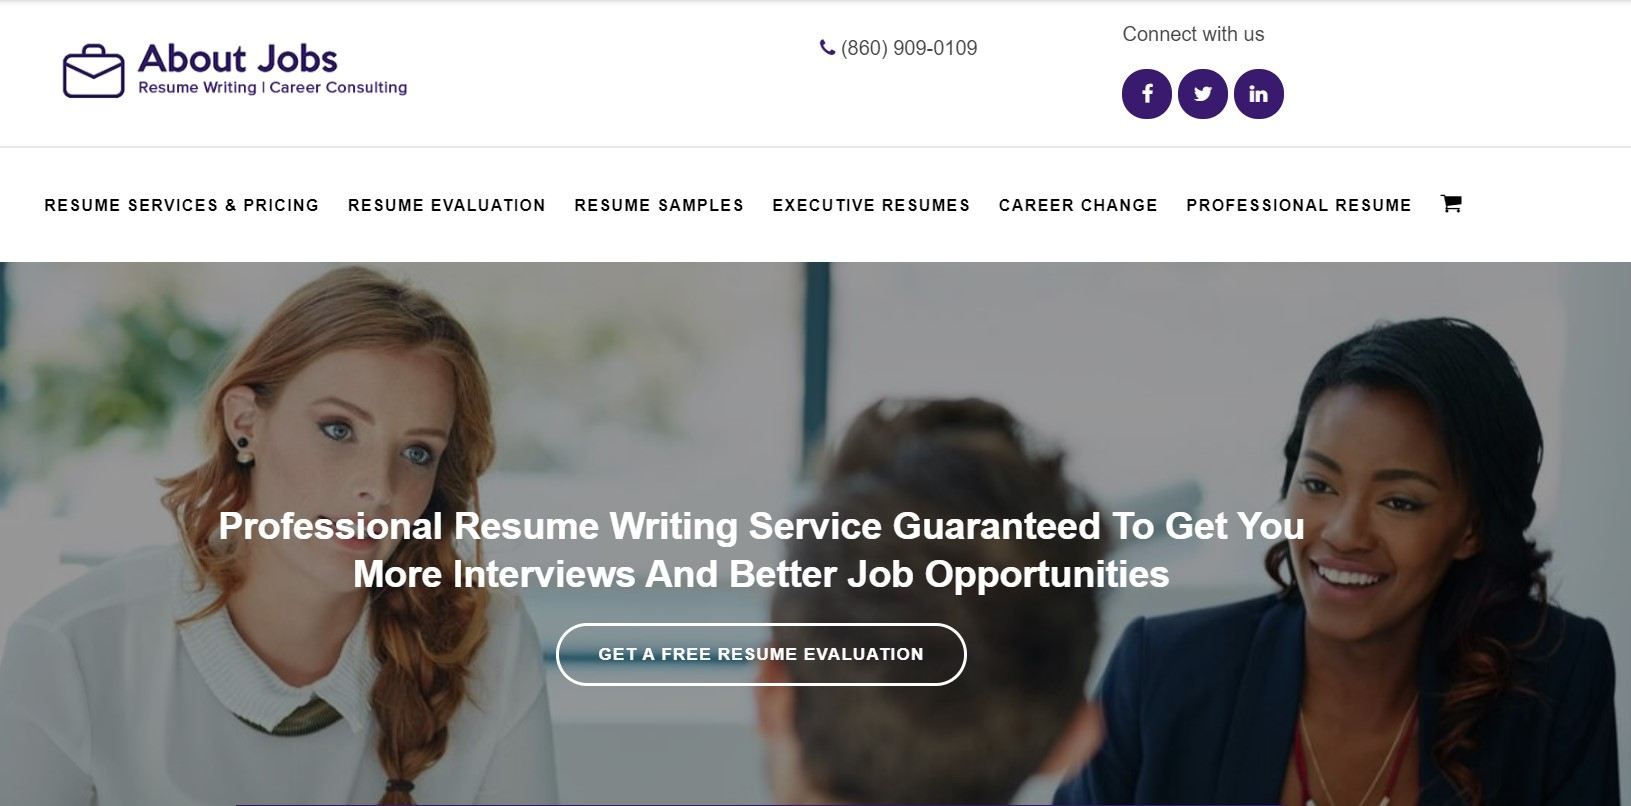 about jobs resume writing in new york